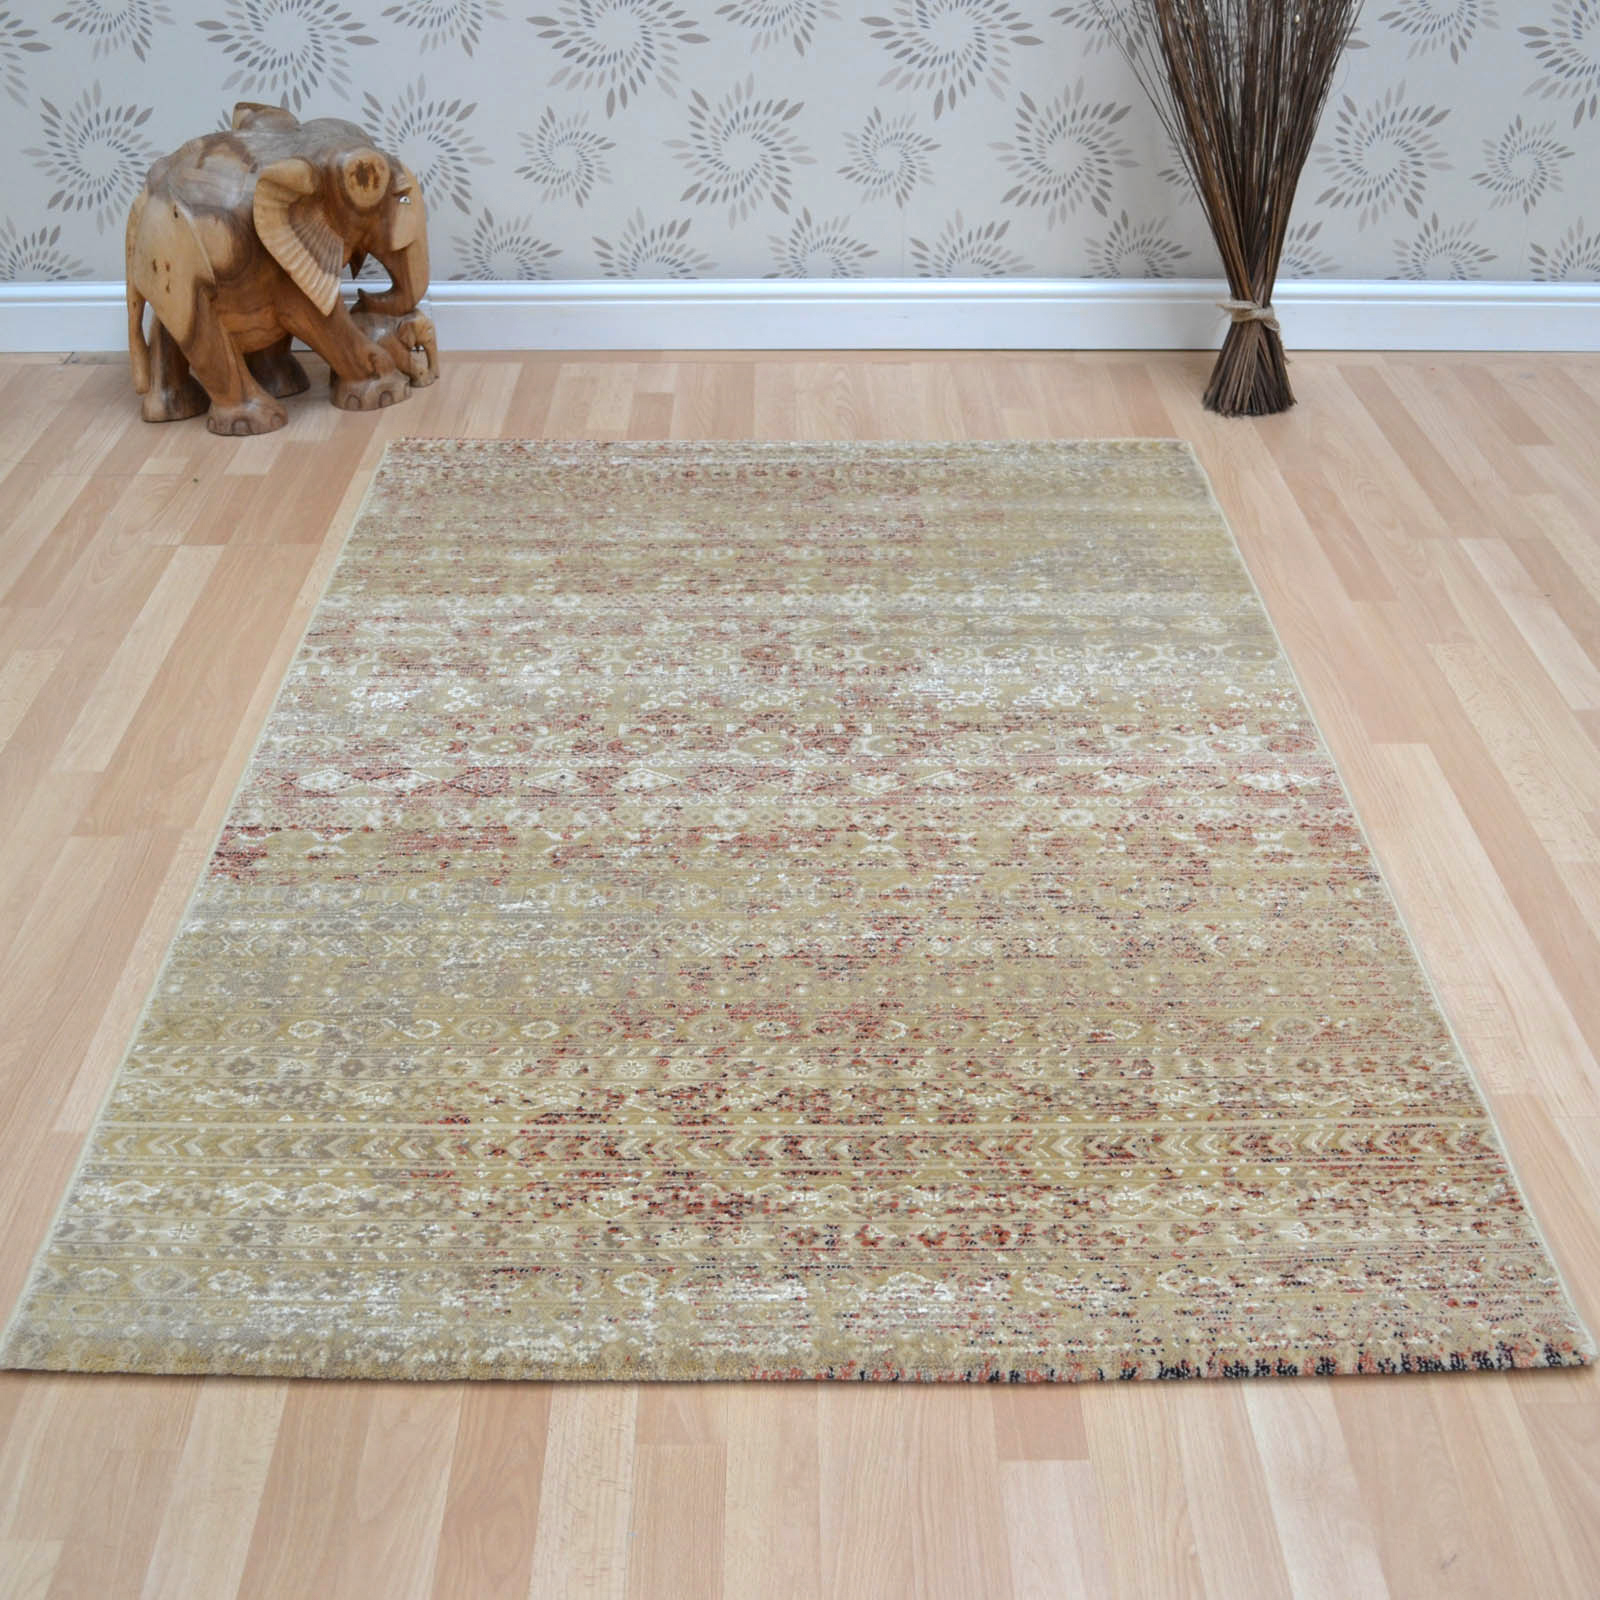 Viscount Rugs V64 65409 190 Cream